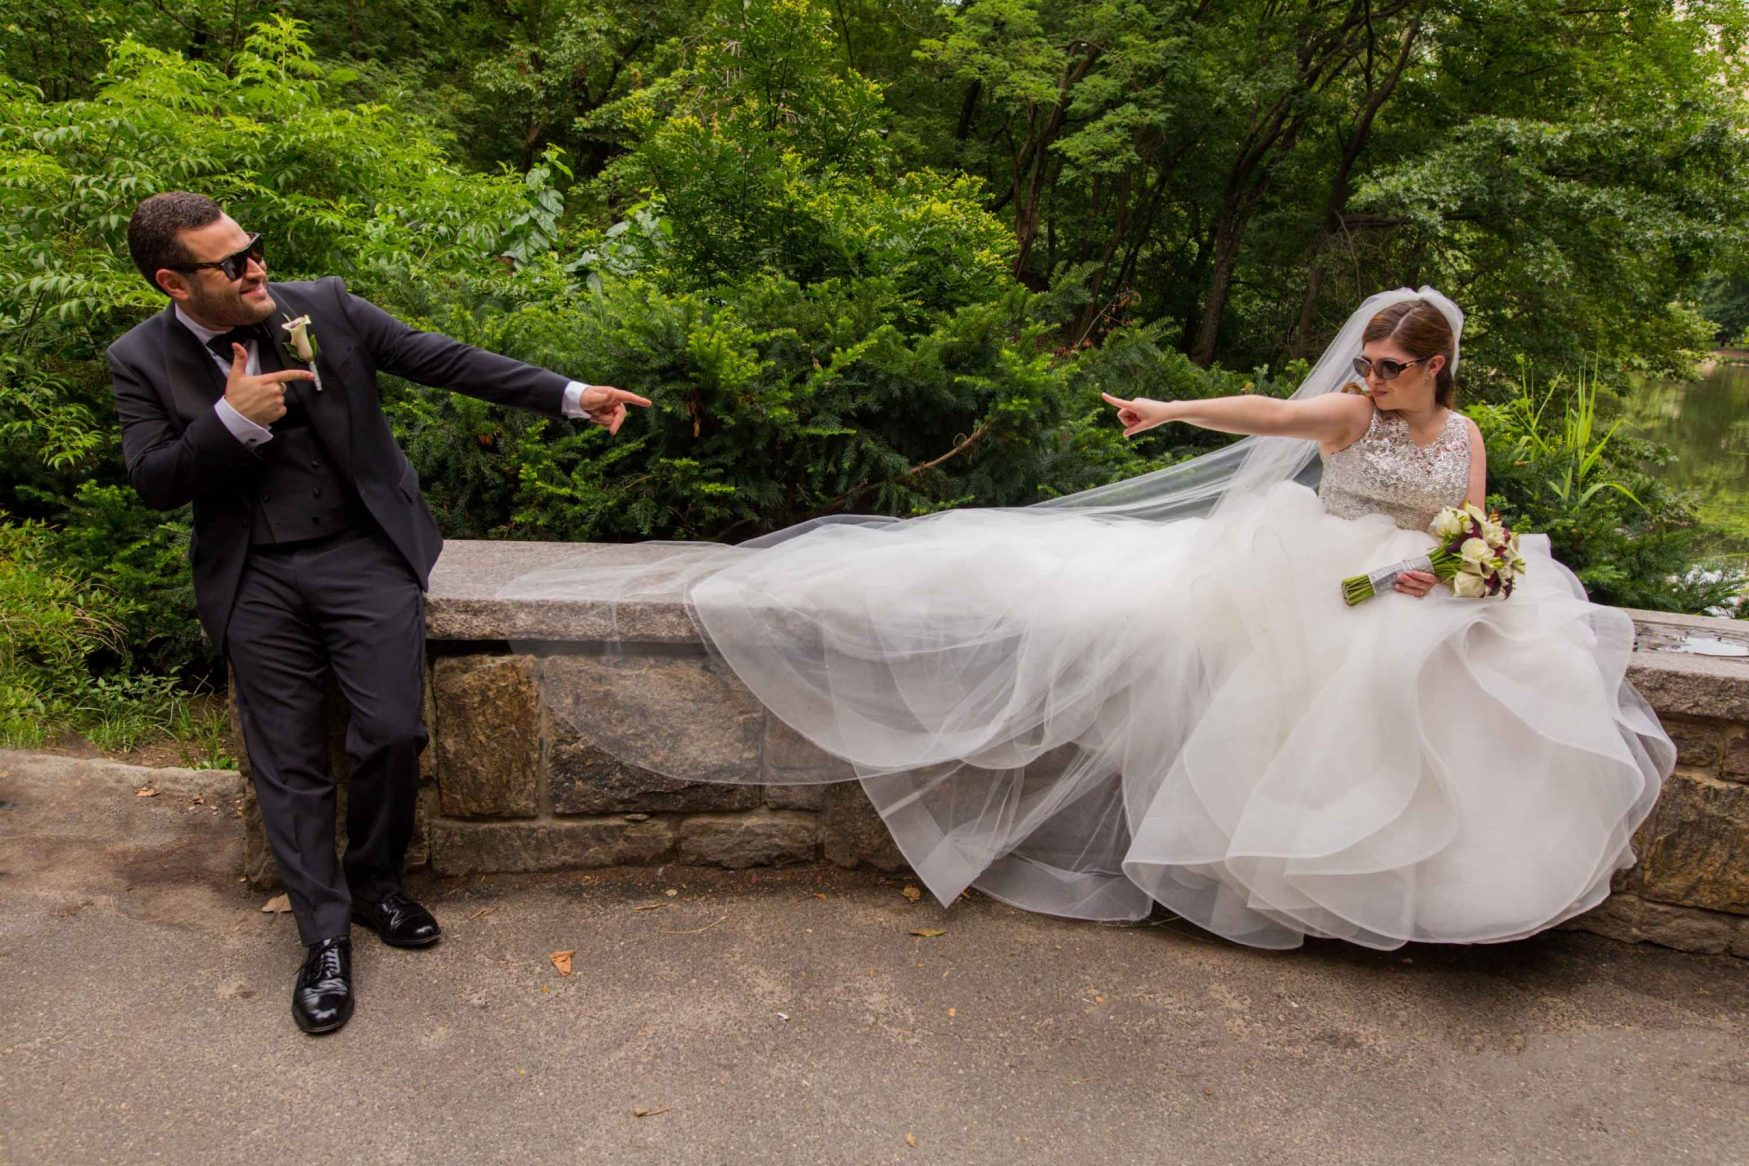 Central Park elopement with fun wedding photographer bride and groom